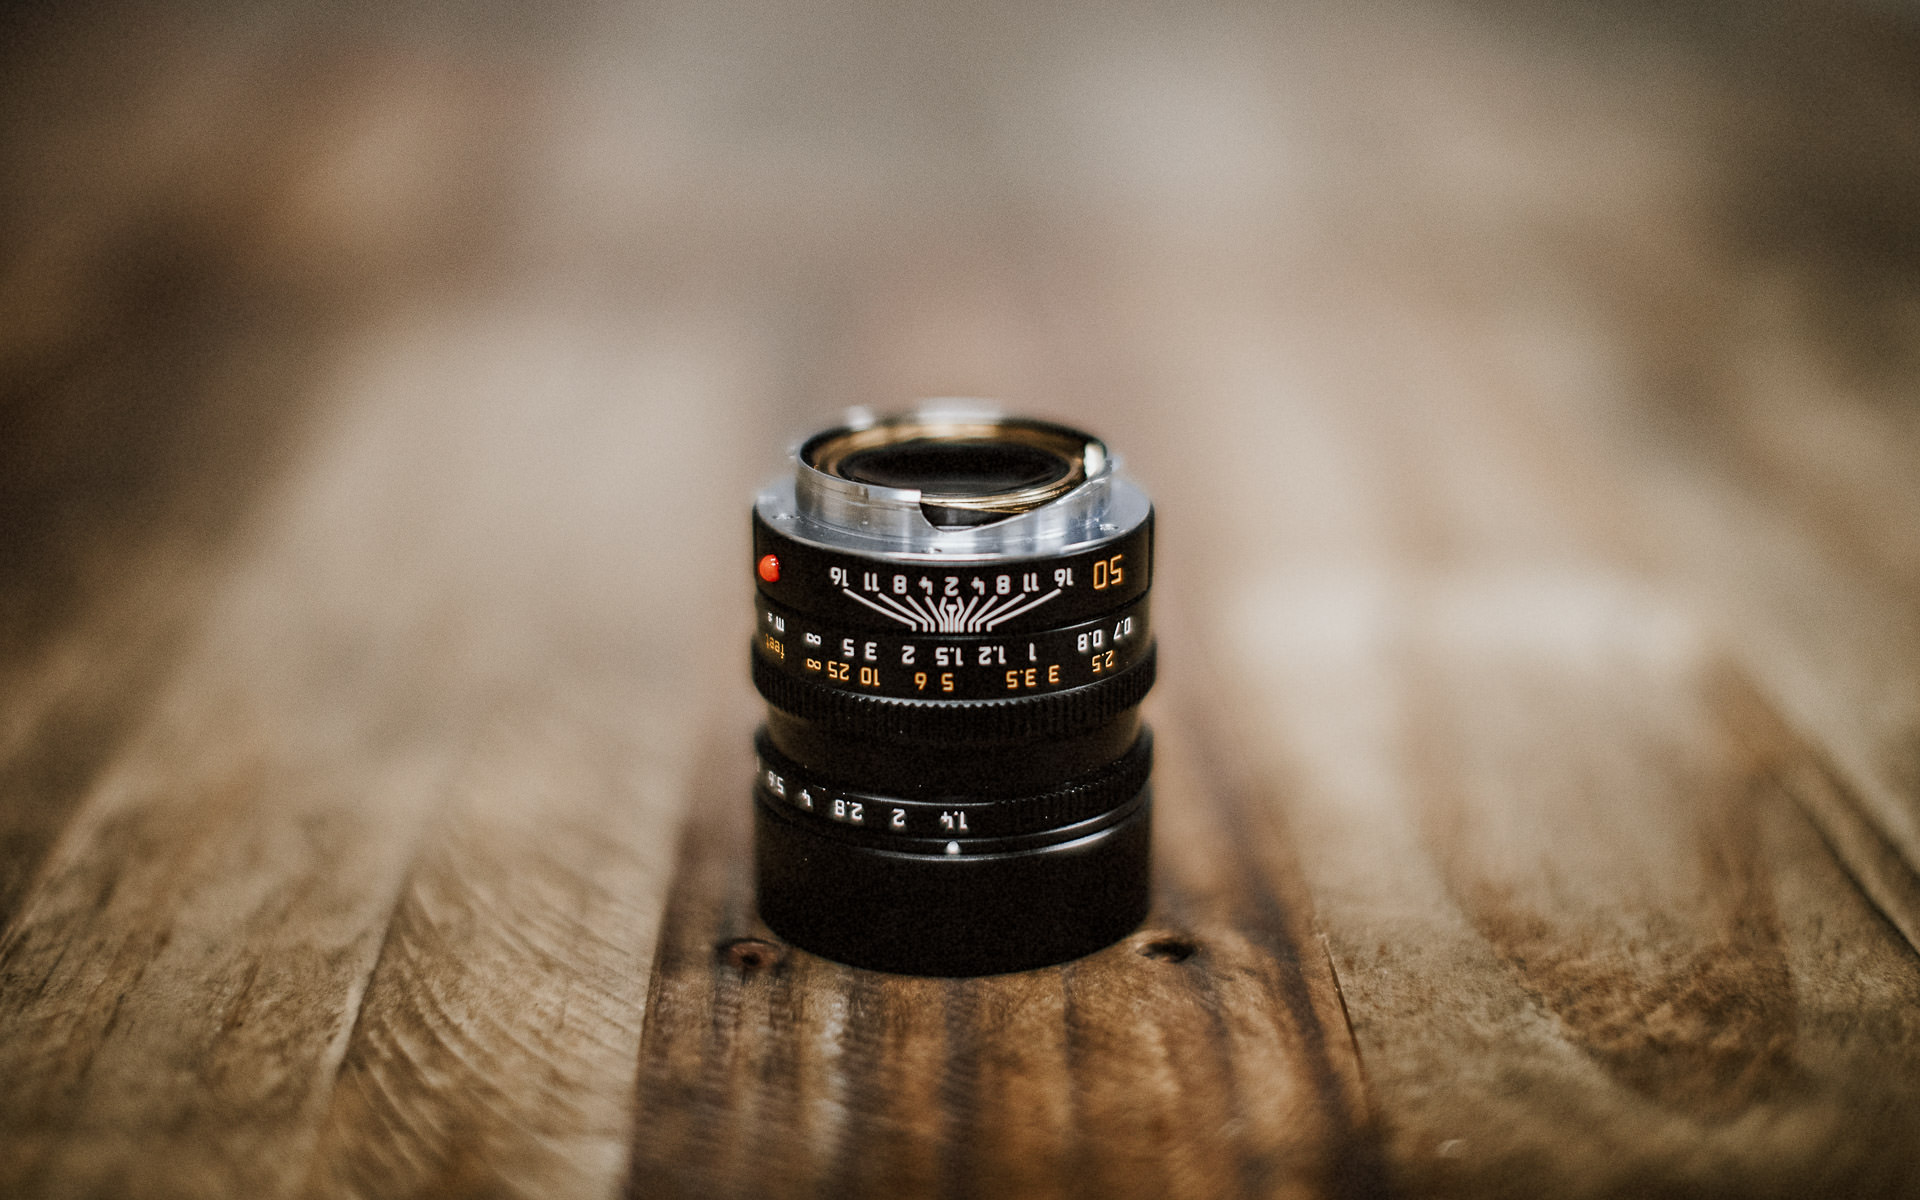 My Top 3 Lenses - How Do They Compare? — JAY CASSARIO